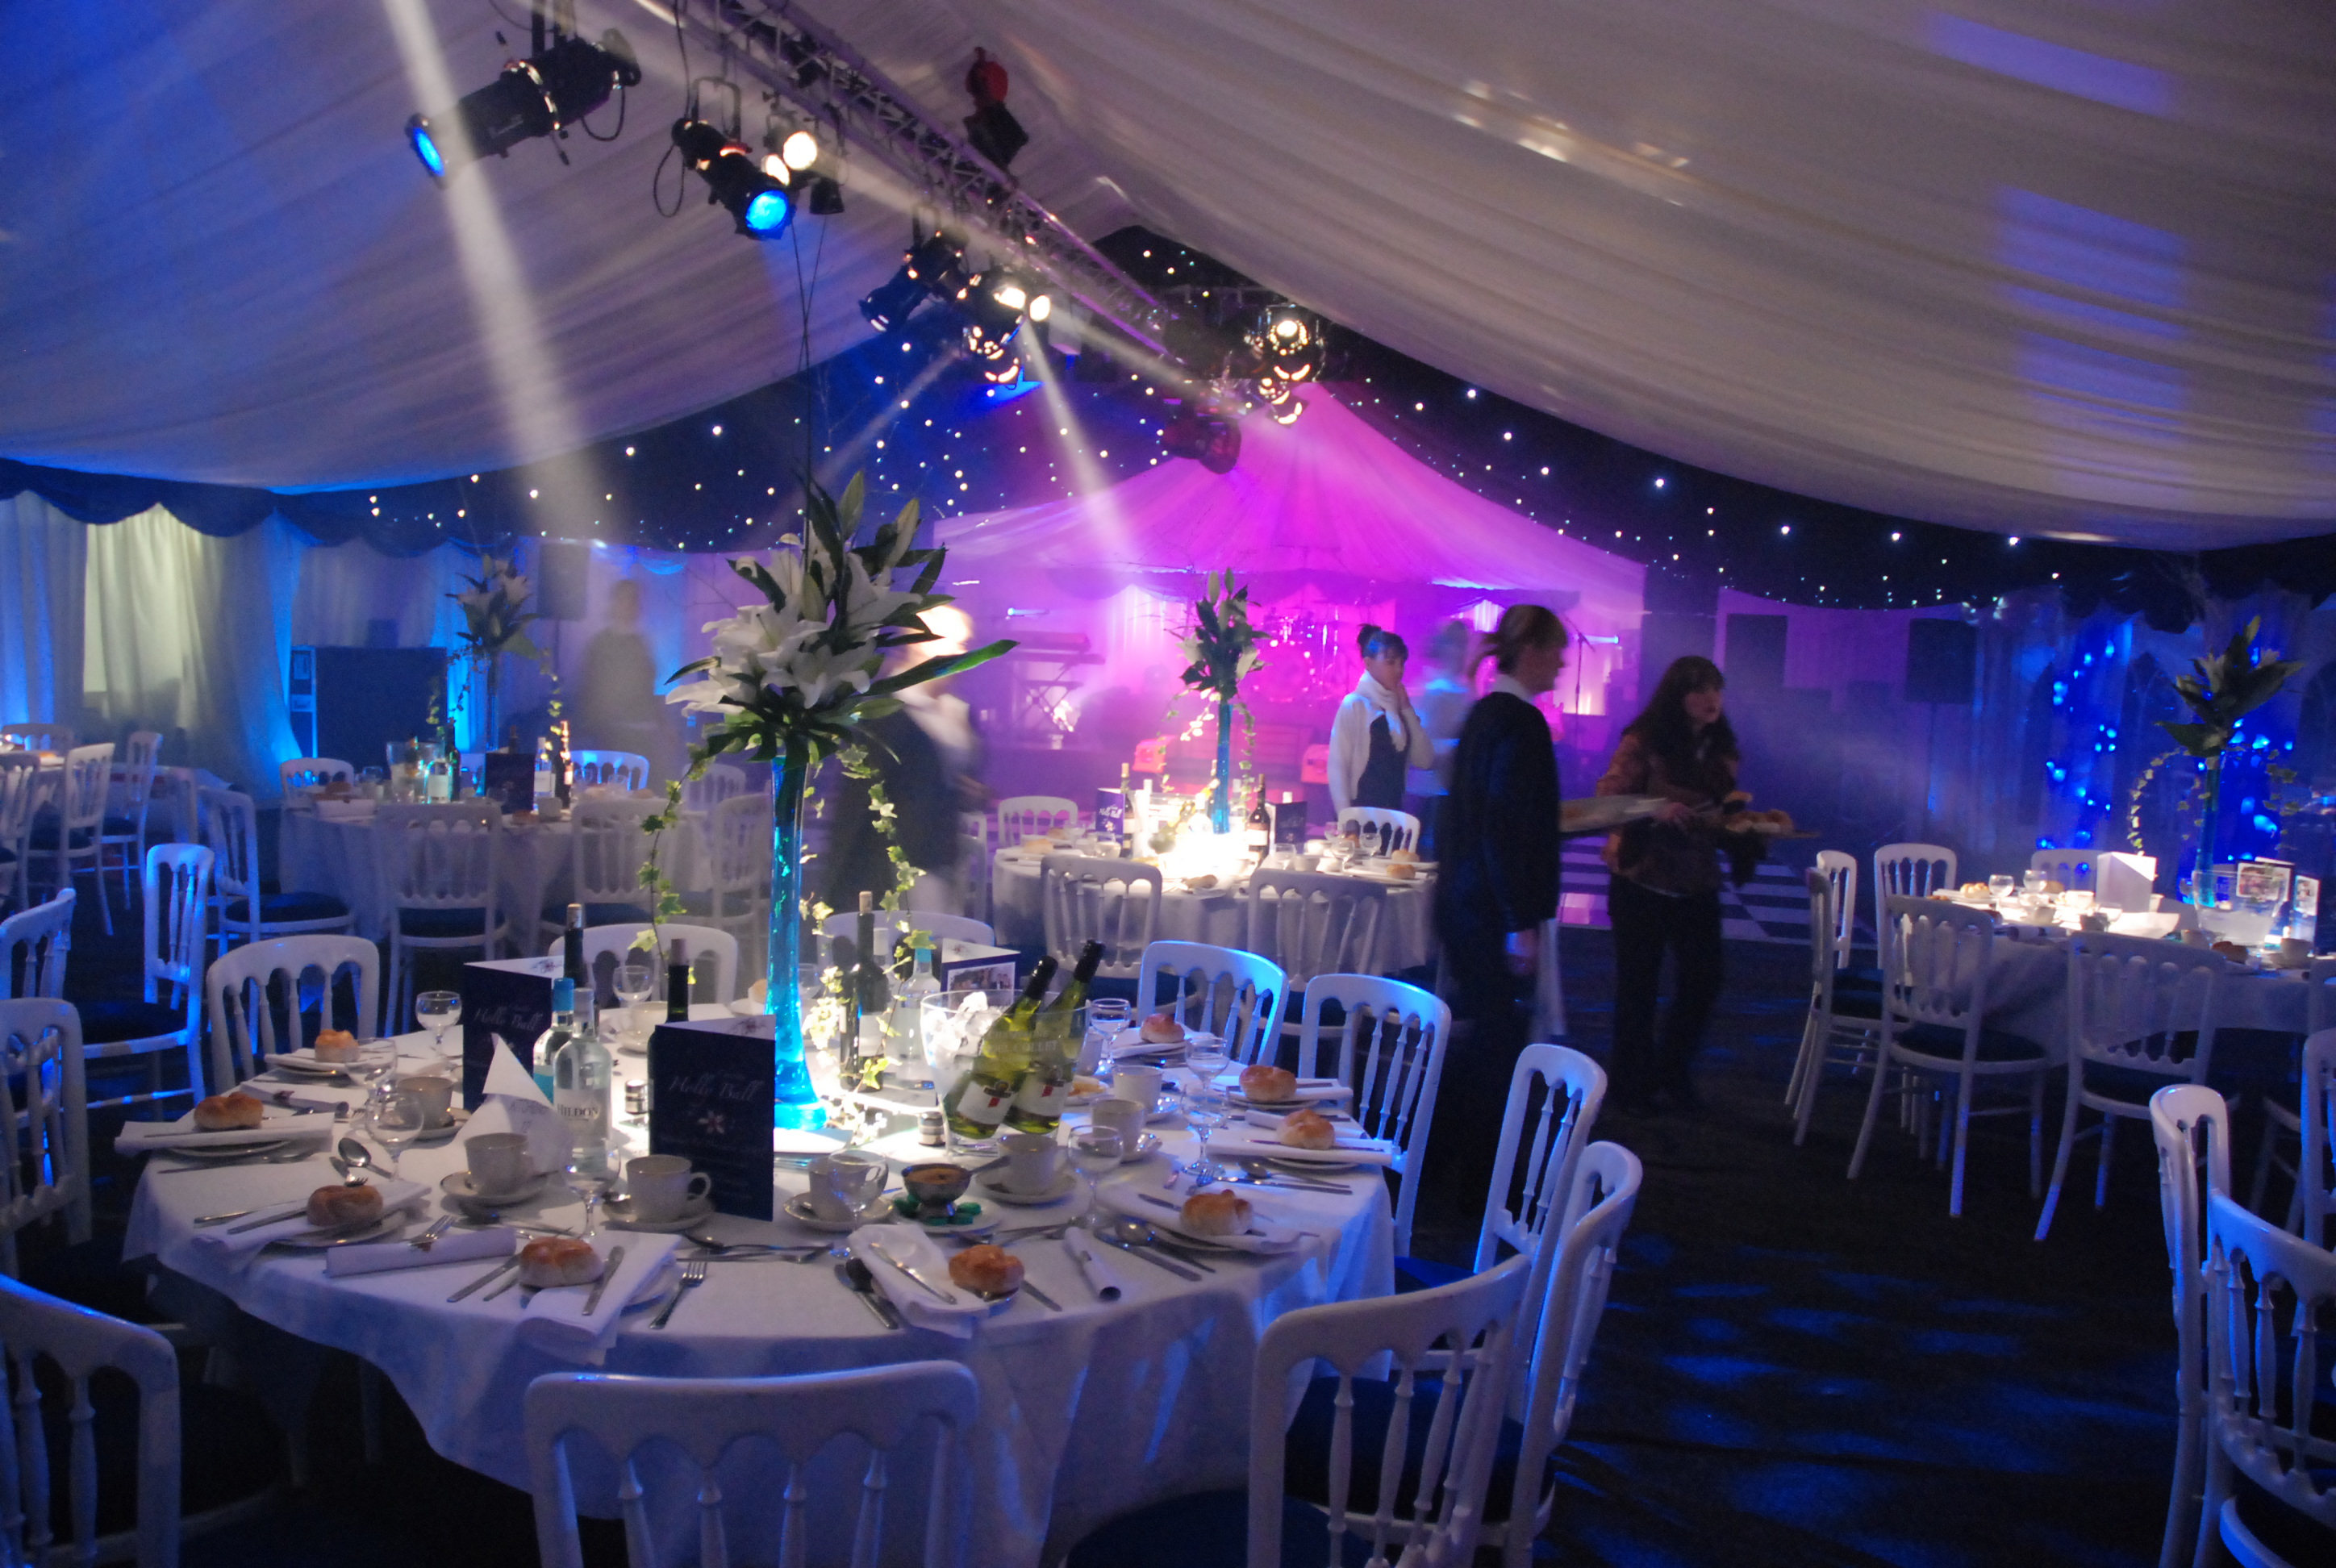 The Holly (Charity) Ball